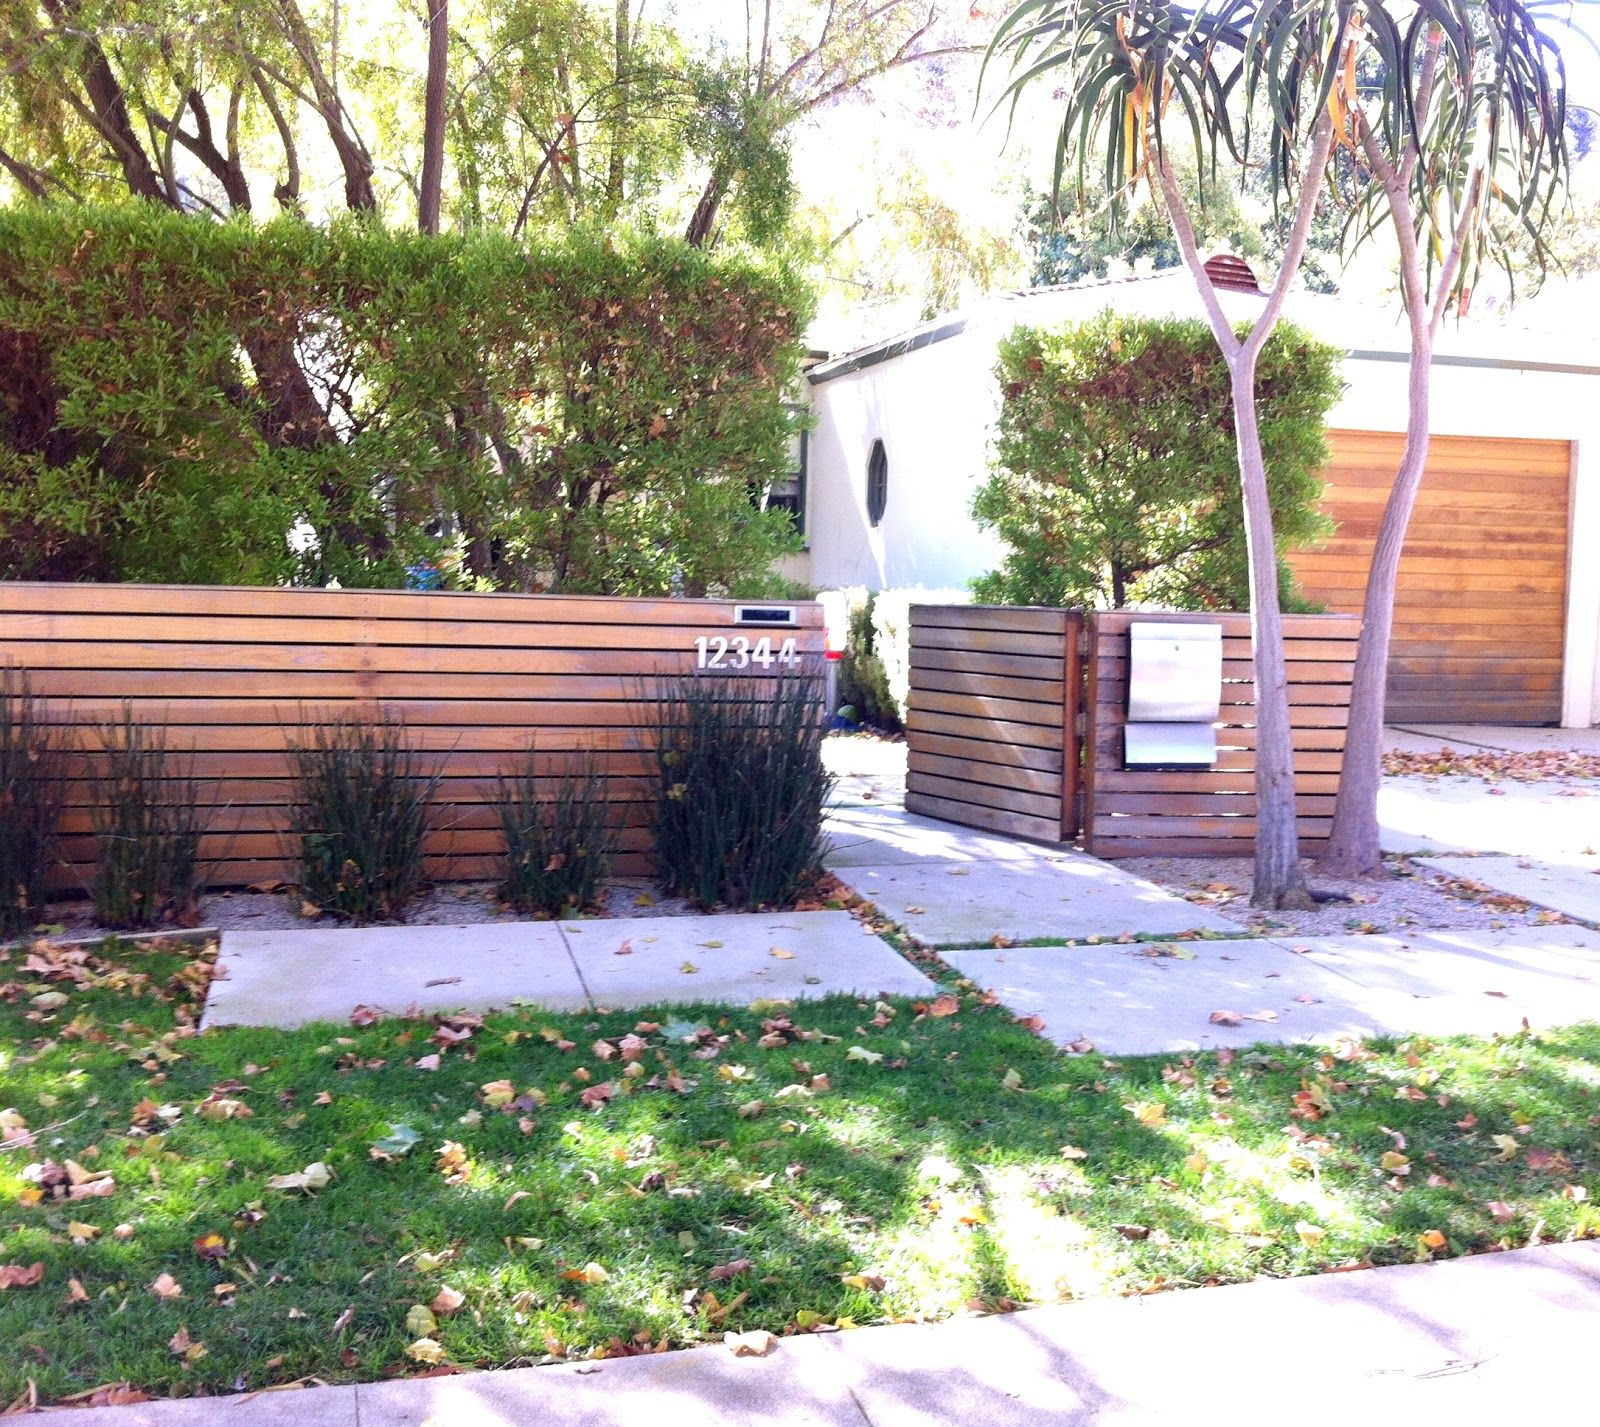 pin by teri o connor on ideas for my little cinderblock on inspiring trends front yard landscaping ideas minimal budget id=22823